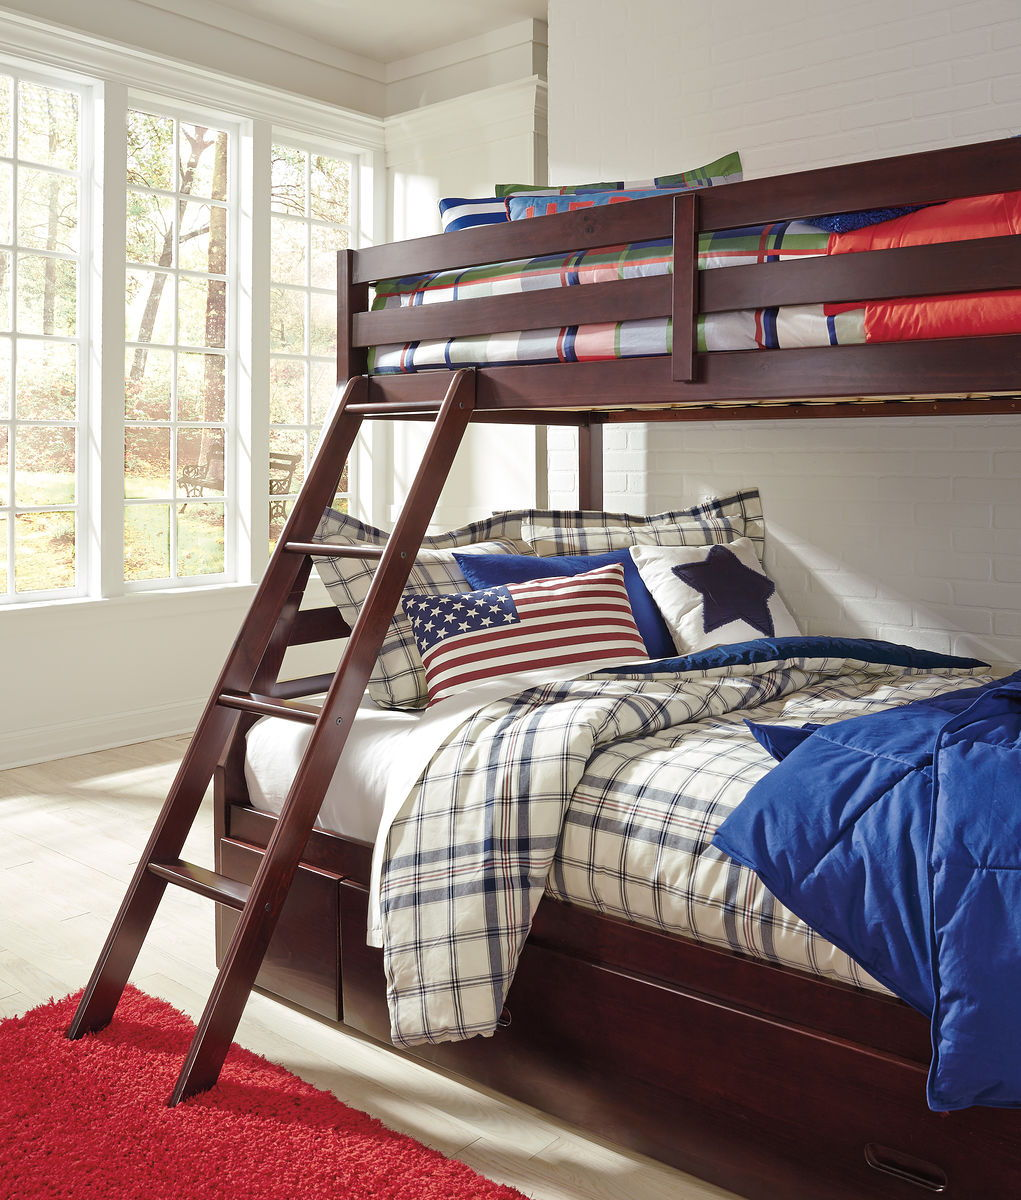 Halanton Bunk Bed with 1 Large Storage Drawer | Calgary's Furniture Store